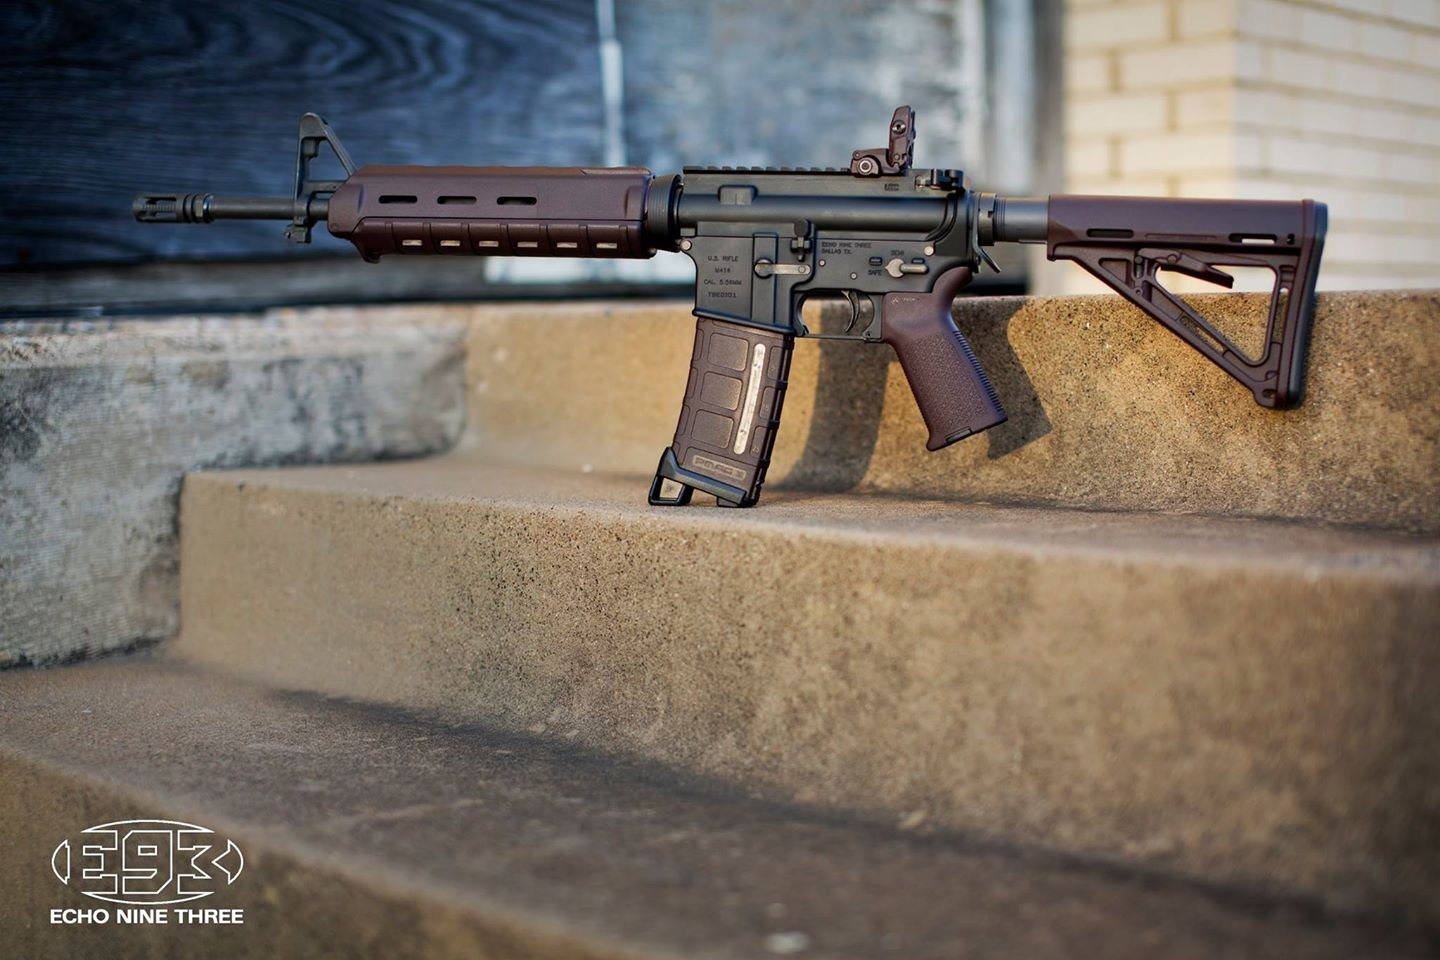 The Plum AR Gets Its Name From The Custom Plum Color Magpul Furniture And  Accessories That Mimic The Purplish Hues Of The Famous Early Russian  Attempt At ...